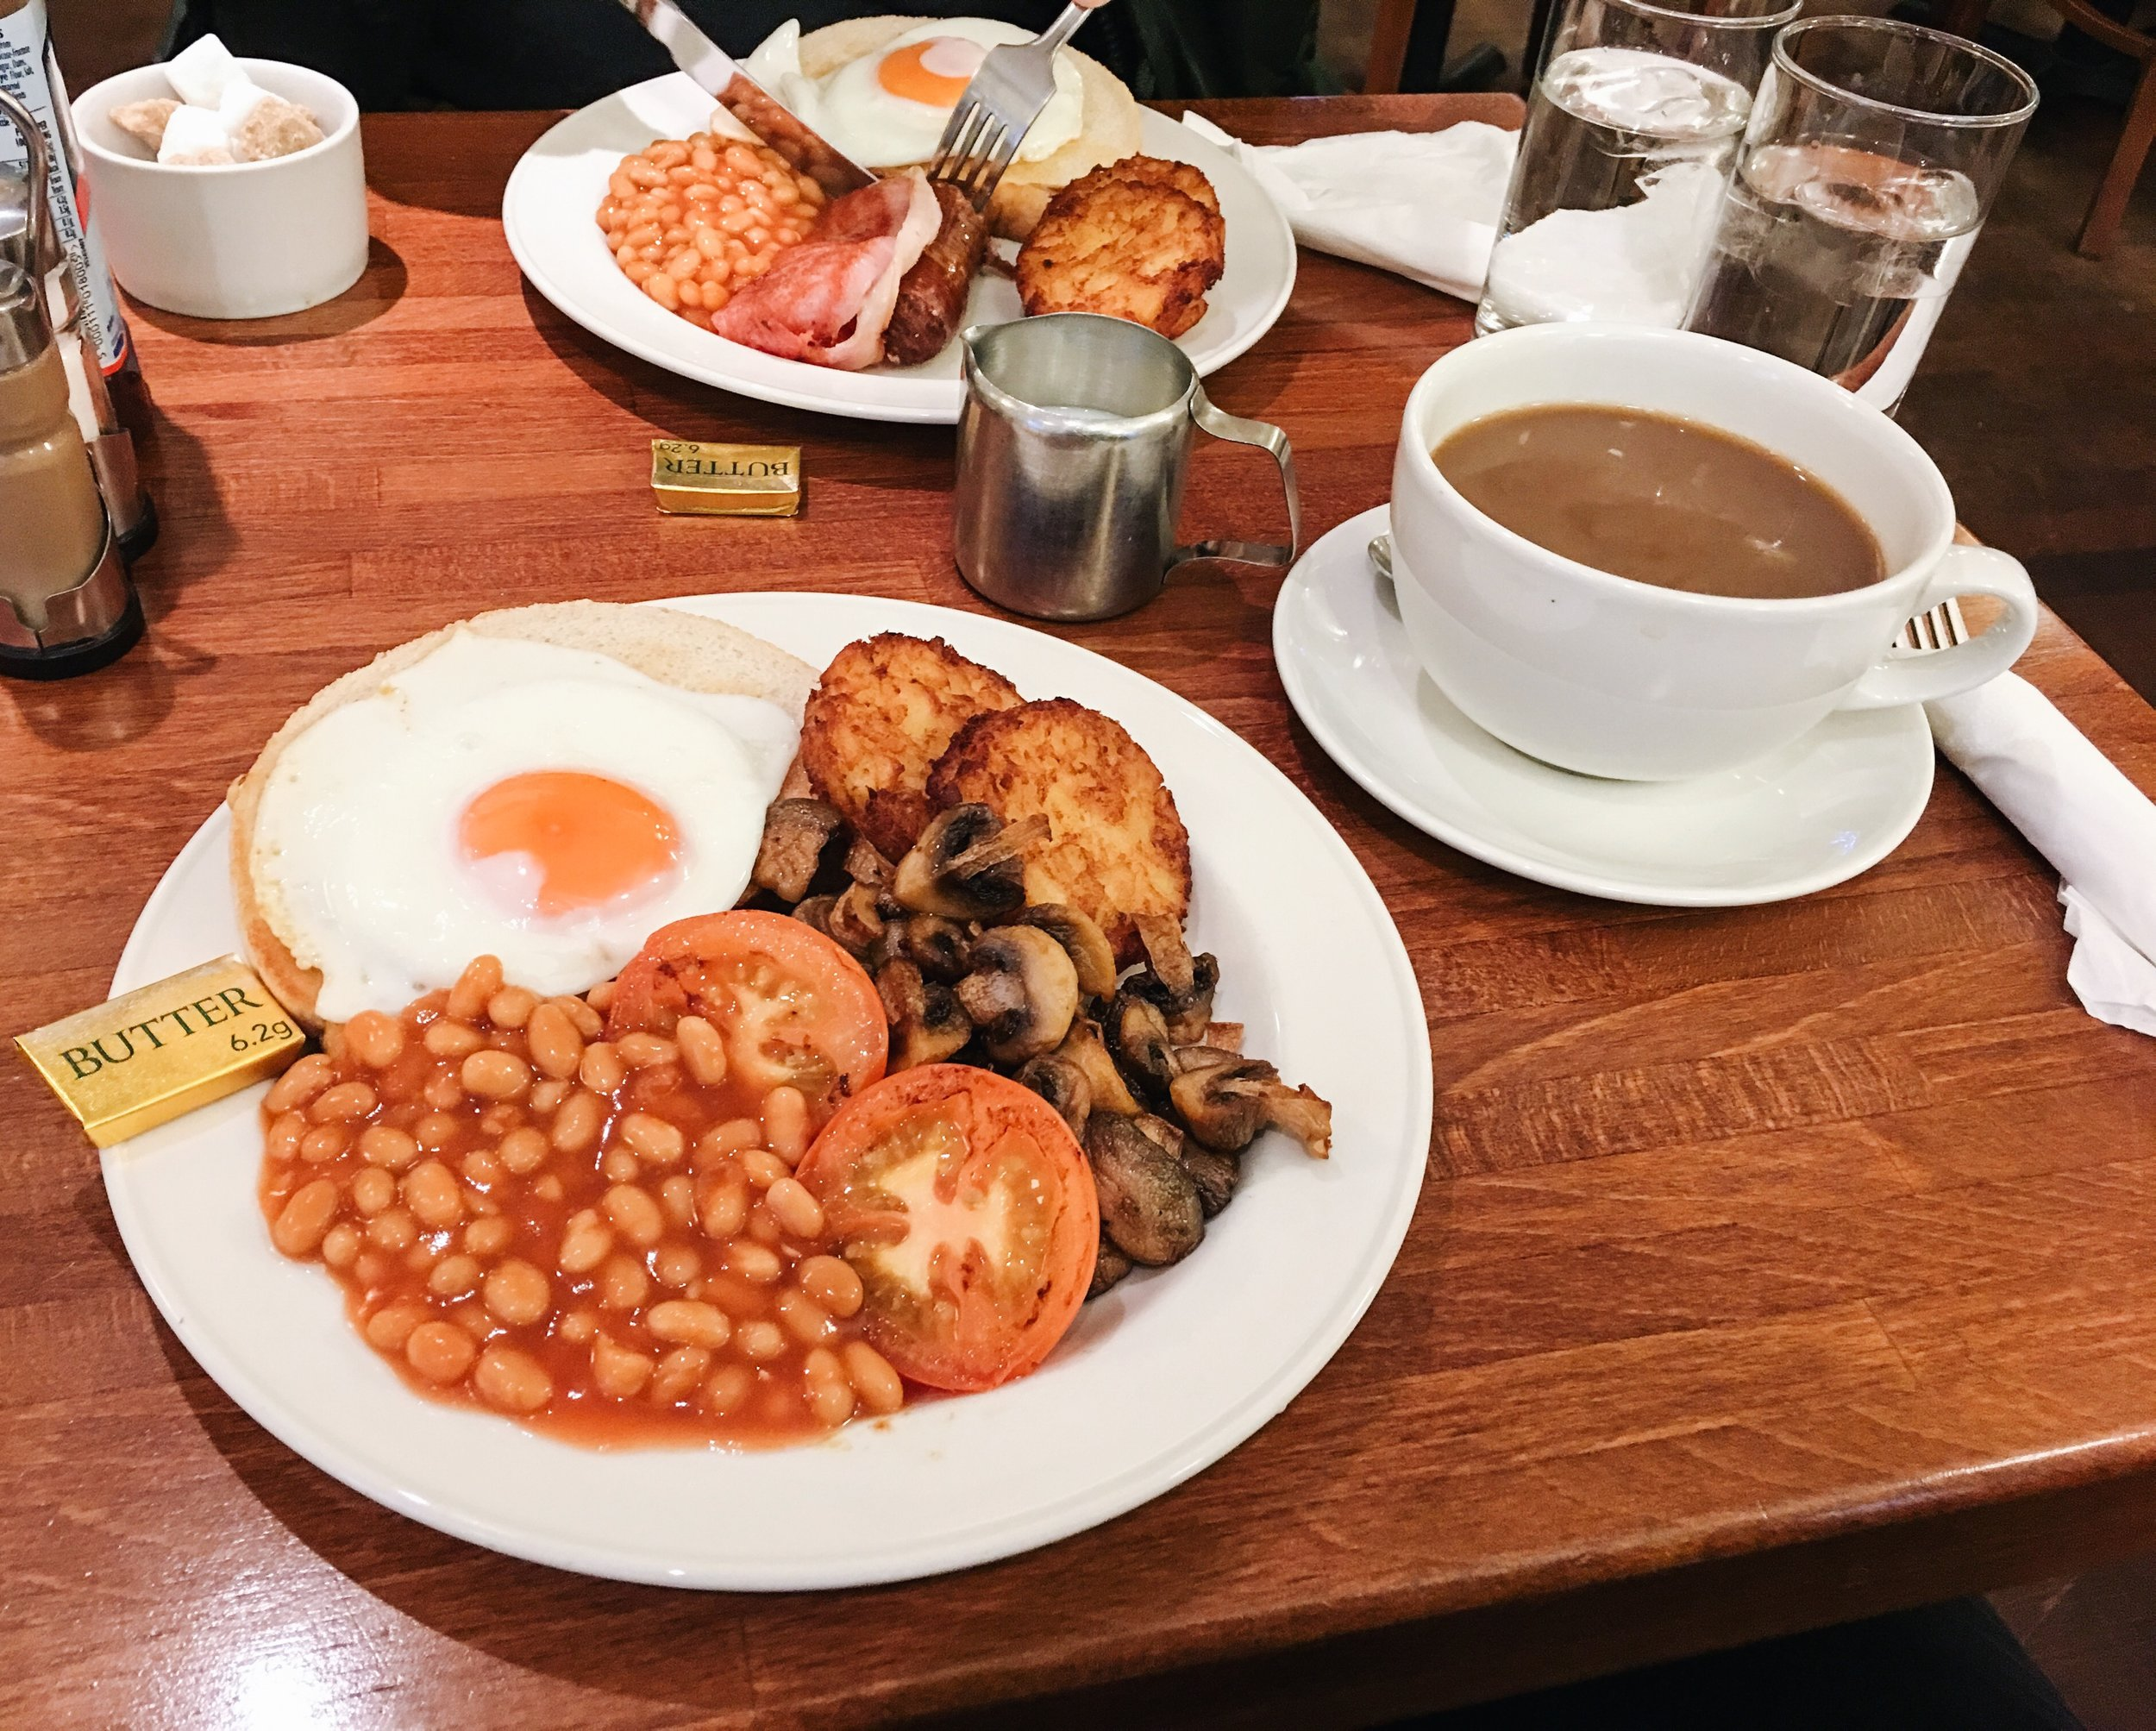 Vegetarian English Breakfast (front) and Full English Breakfast (rear) at News Café, Oxford